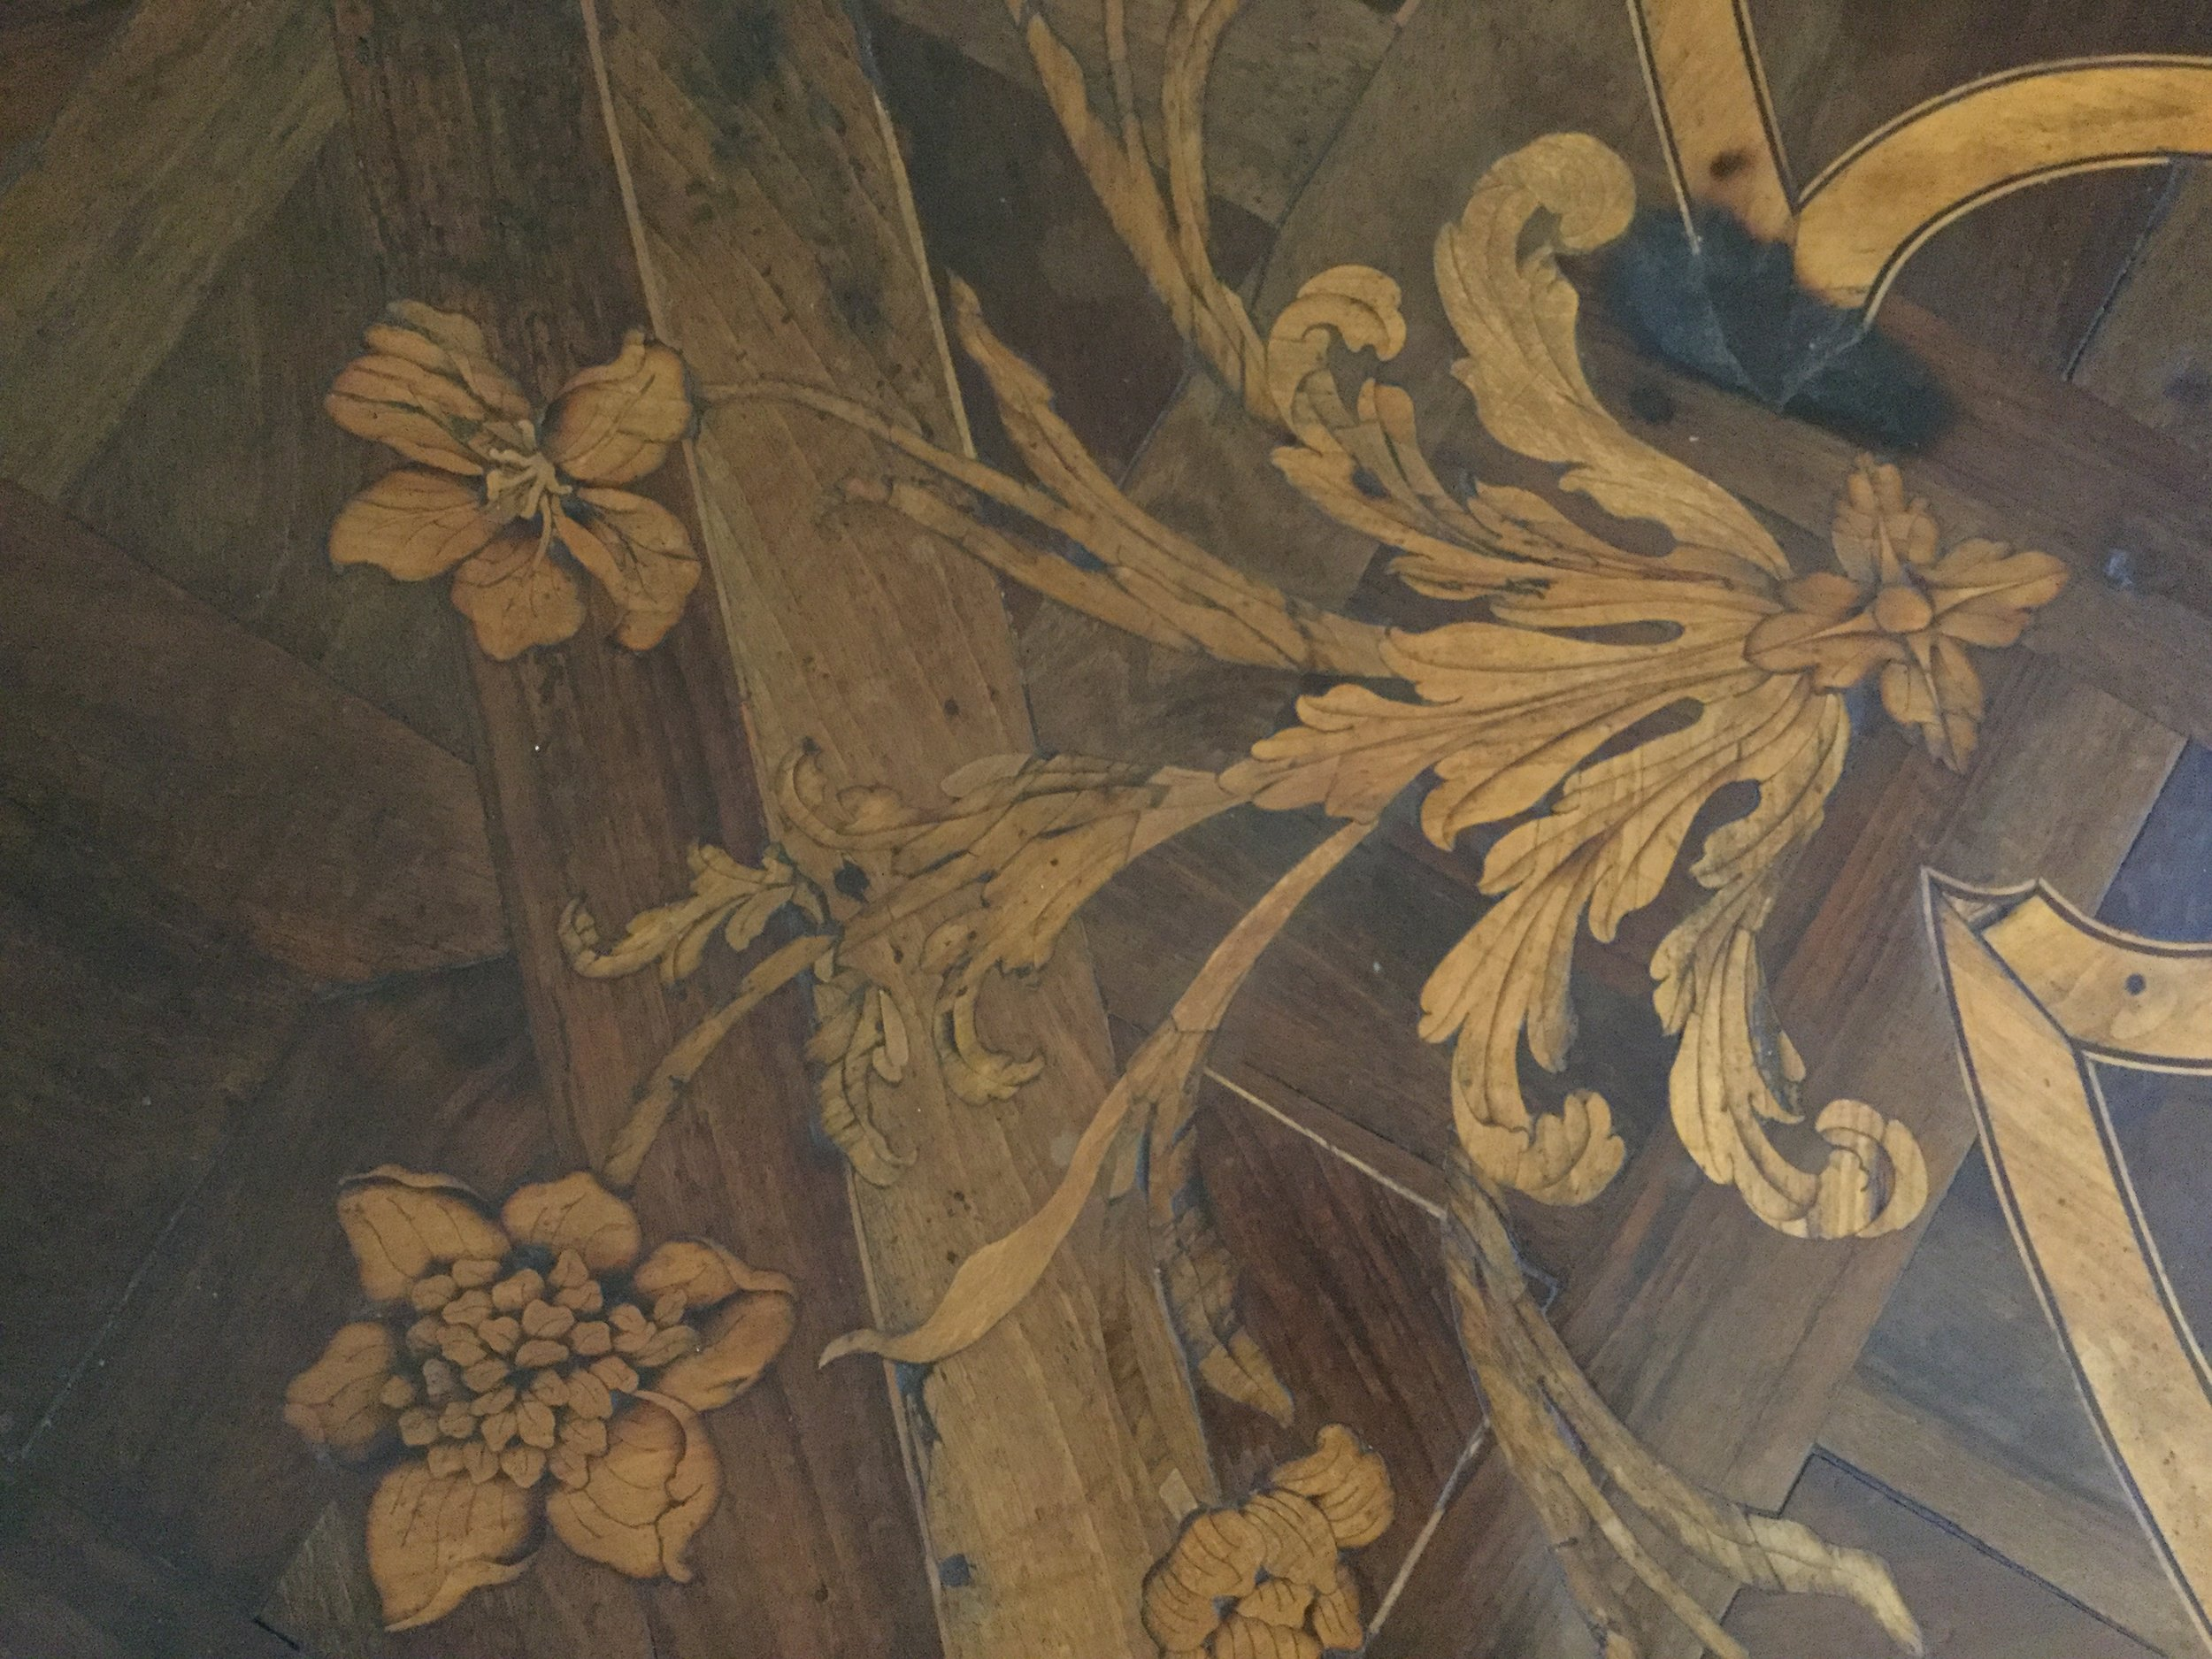 Some of the most beautiful wood inlays in the floor.